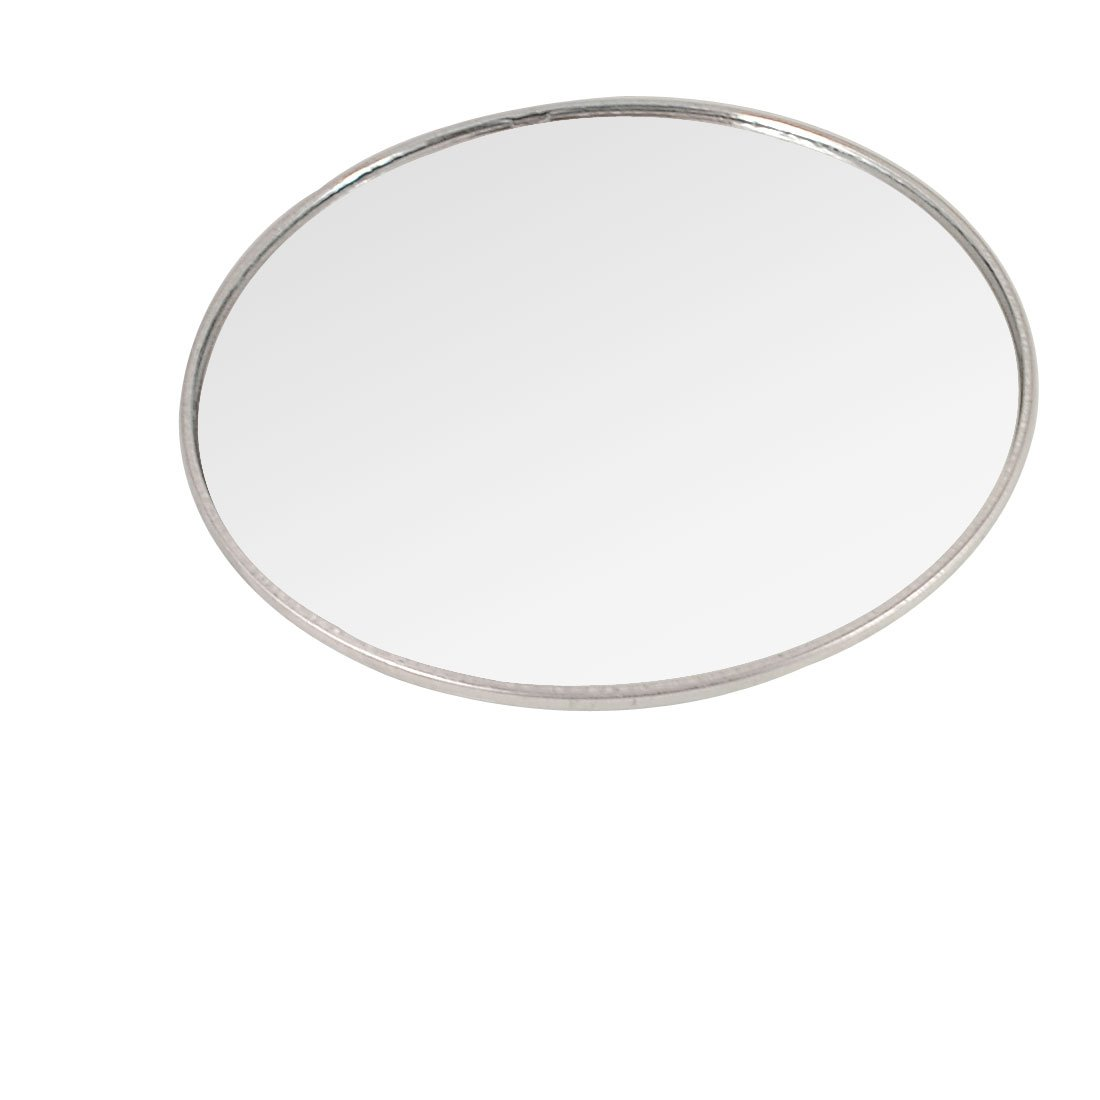 uxcell Car 95mm Convex Round Side Rearview Blind Spot Mirror Silver Tone